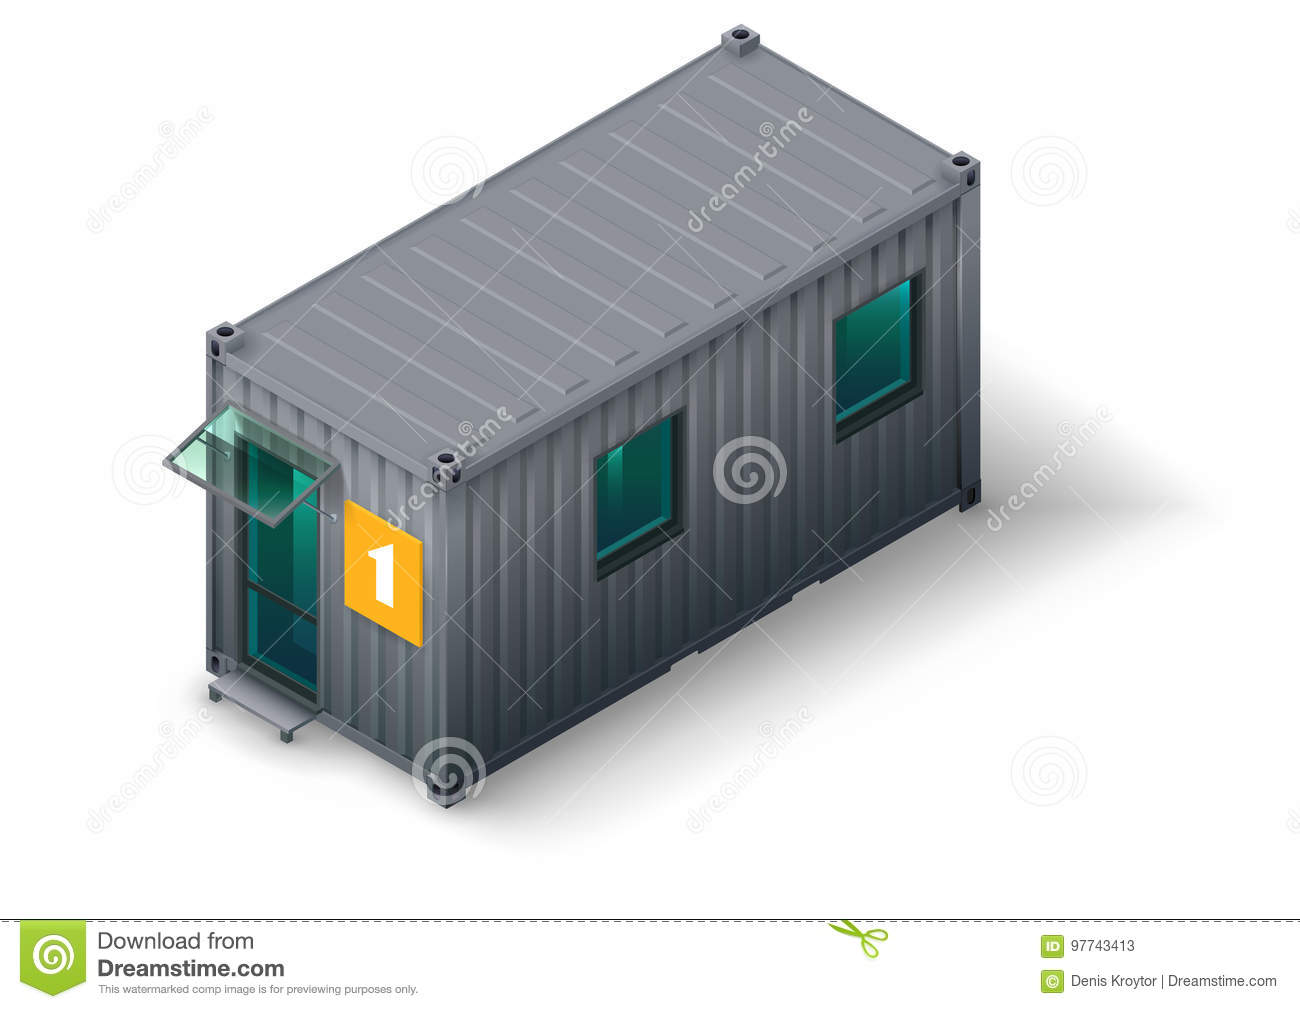 Module Container Building Stock Vector Illustration Of Site 97743413